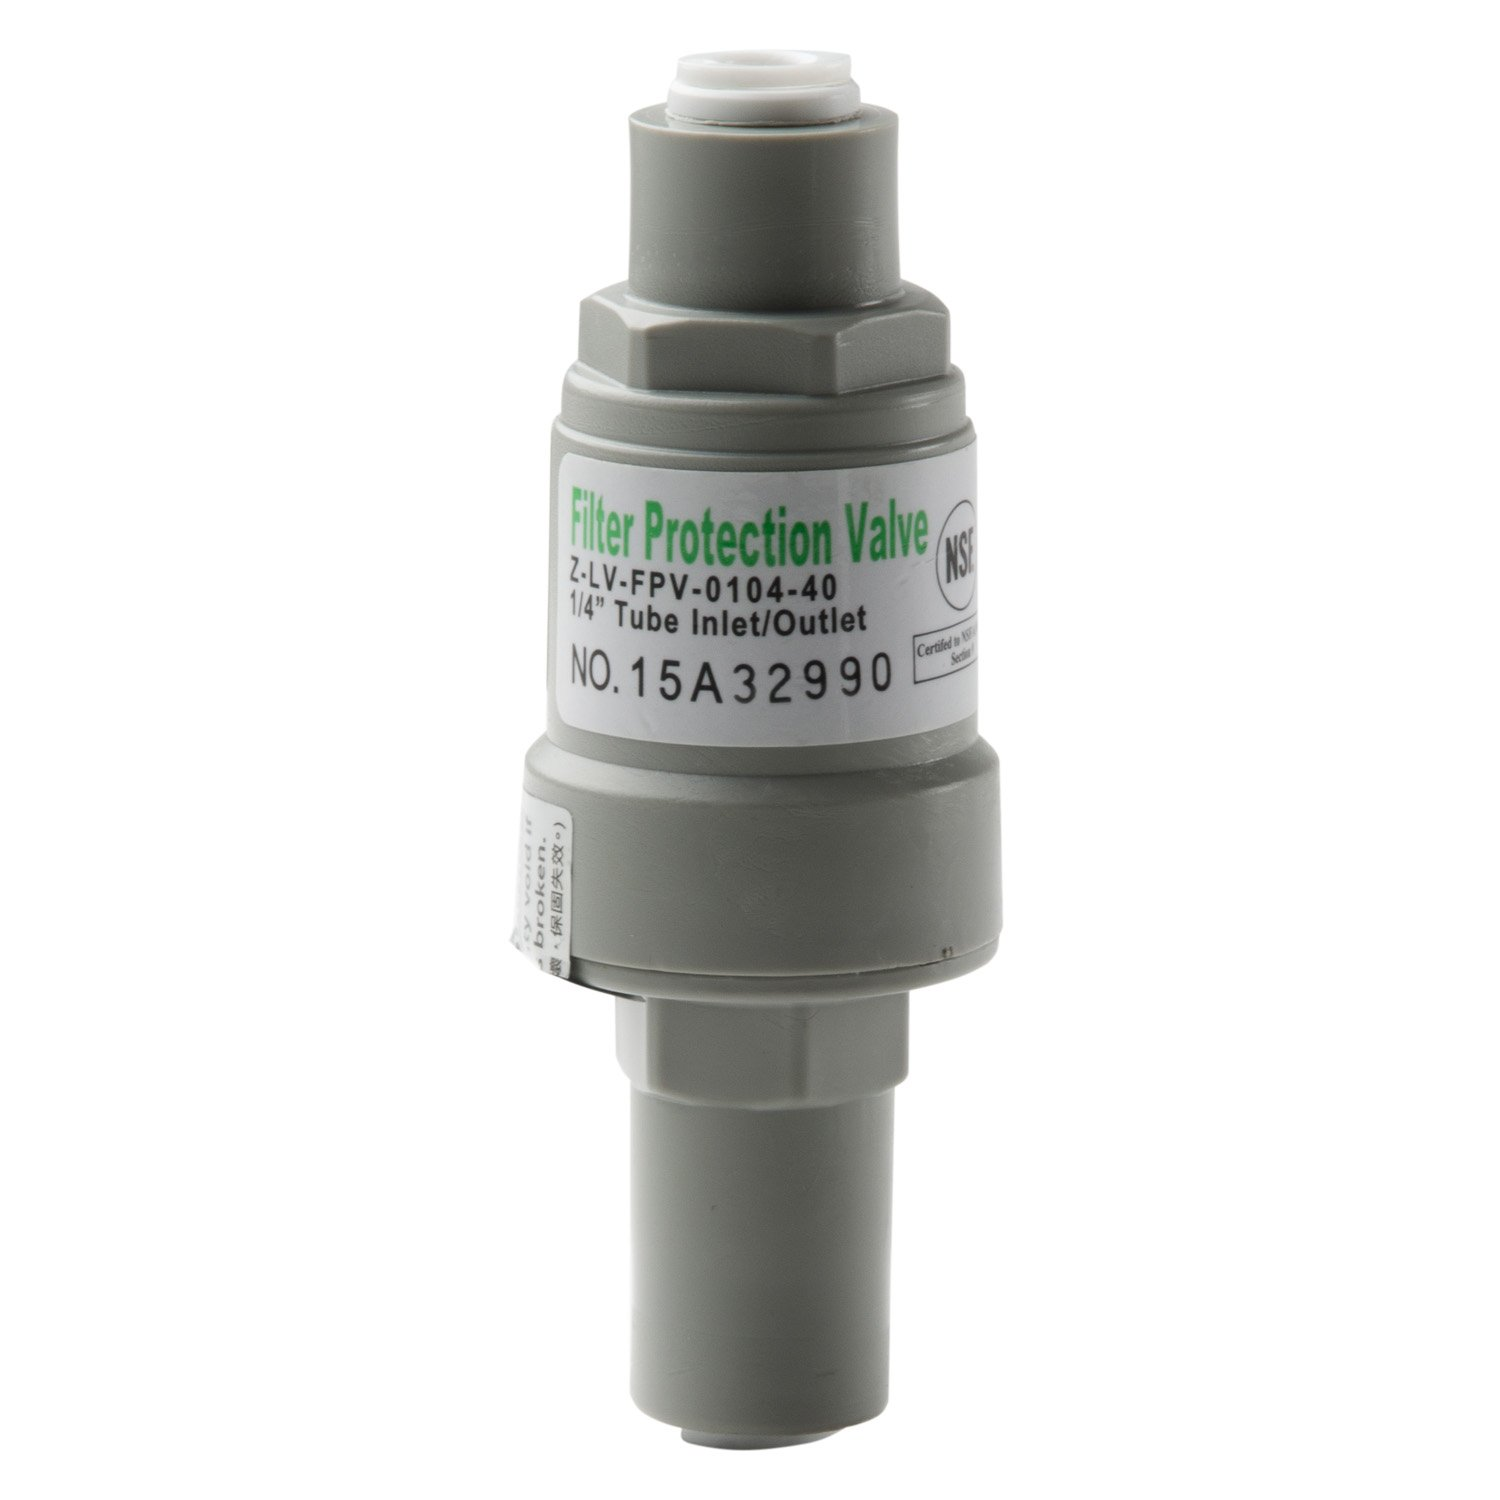 "iSpring APR40 Pressure Regulator Filter Protection Valve with 1/4"" Quick Connect, 40 Psi white"